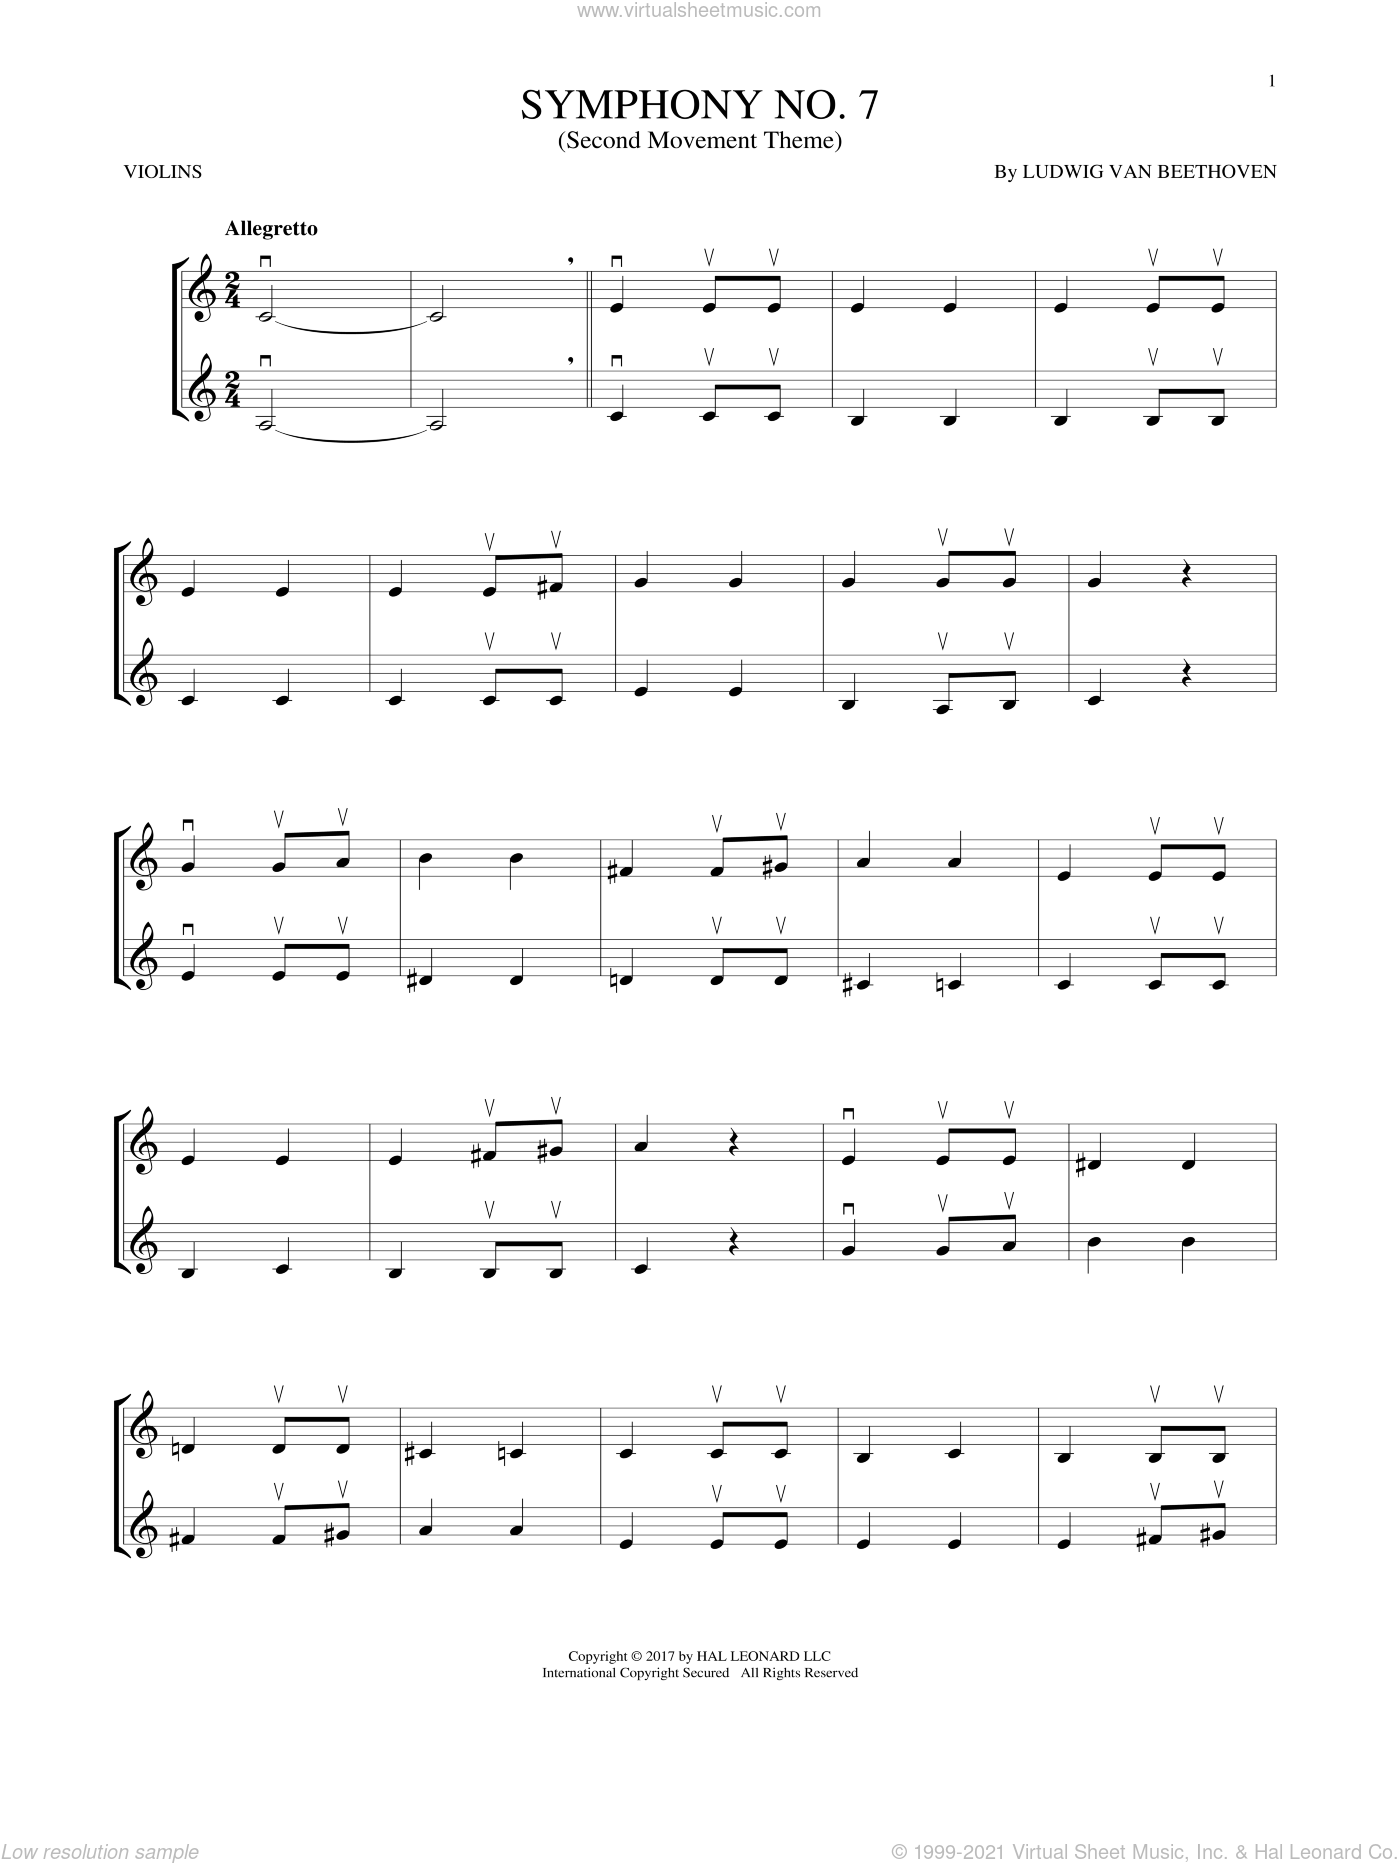 Symphony No. 7 In A Major, Second Movement (Allegretto) sheet music for two violins (duets, violin duets) by Ludwig van Beethoven, classical score, intermediate skill level